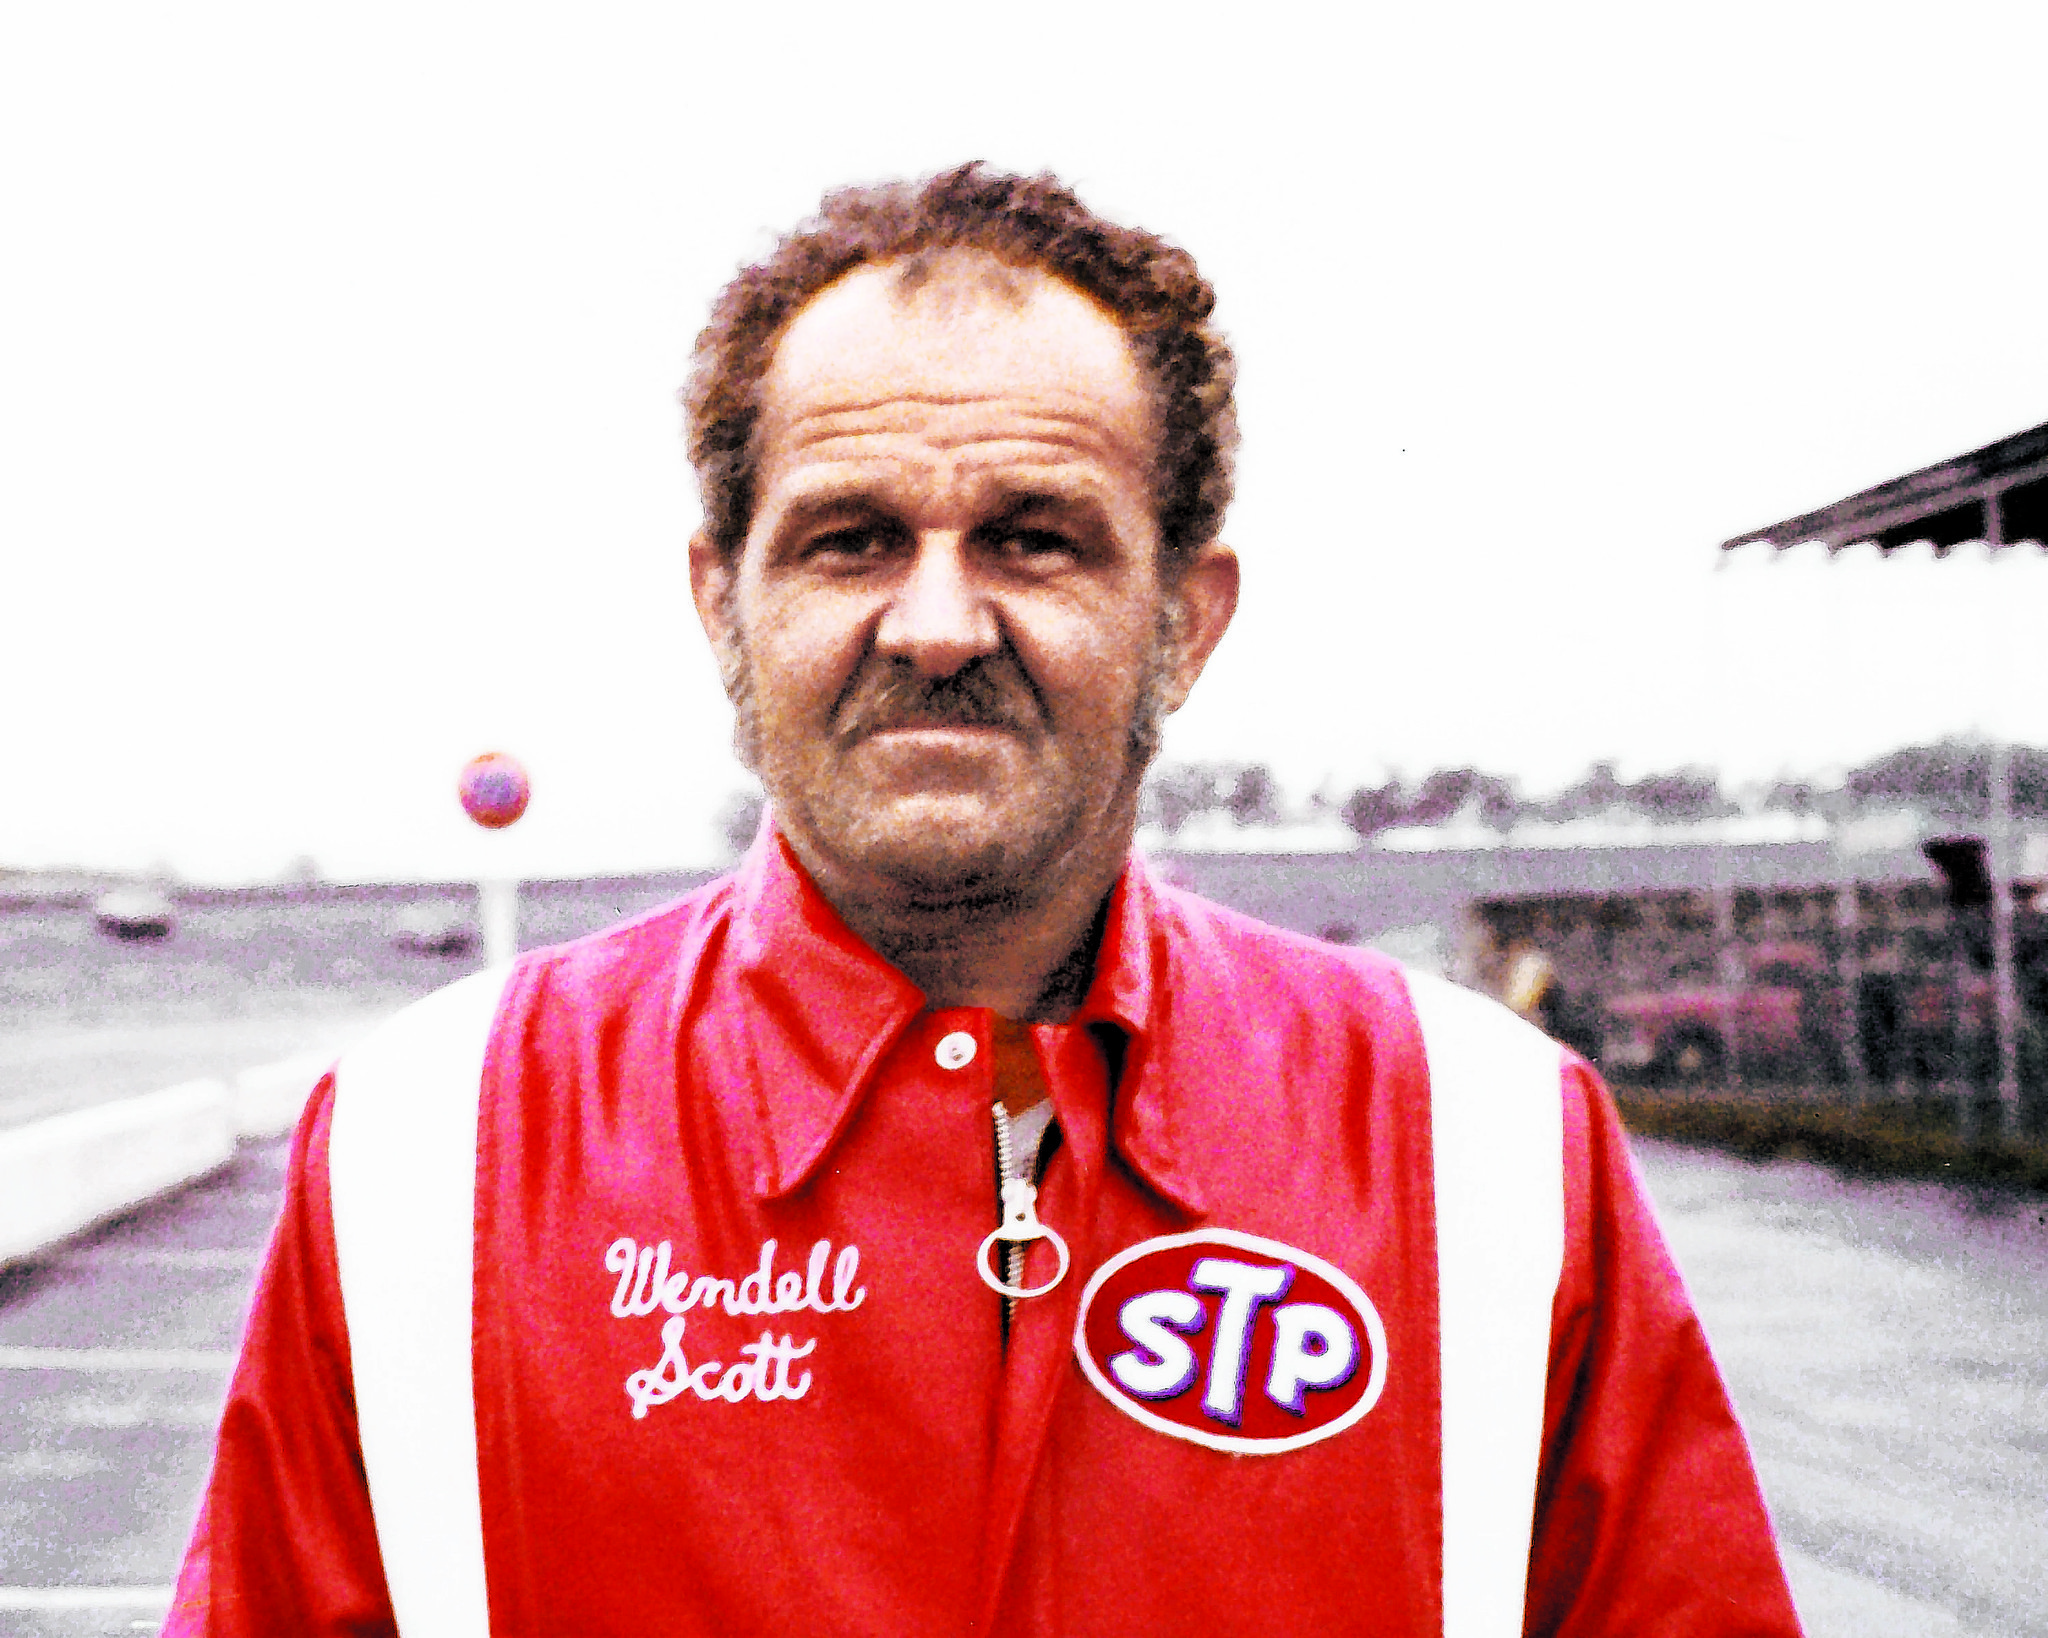 Wendell Scott NASCAR Hall of Fame honor is one to cherish as he joins 4 other inductees in ...